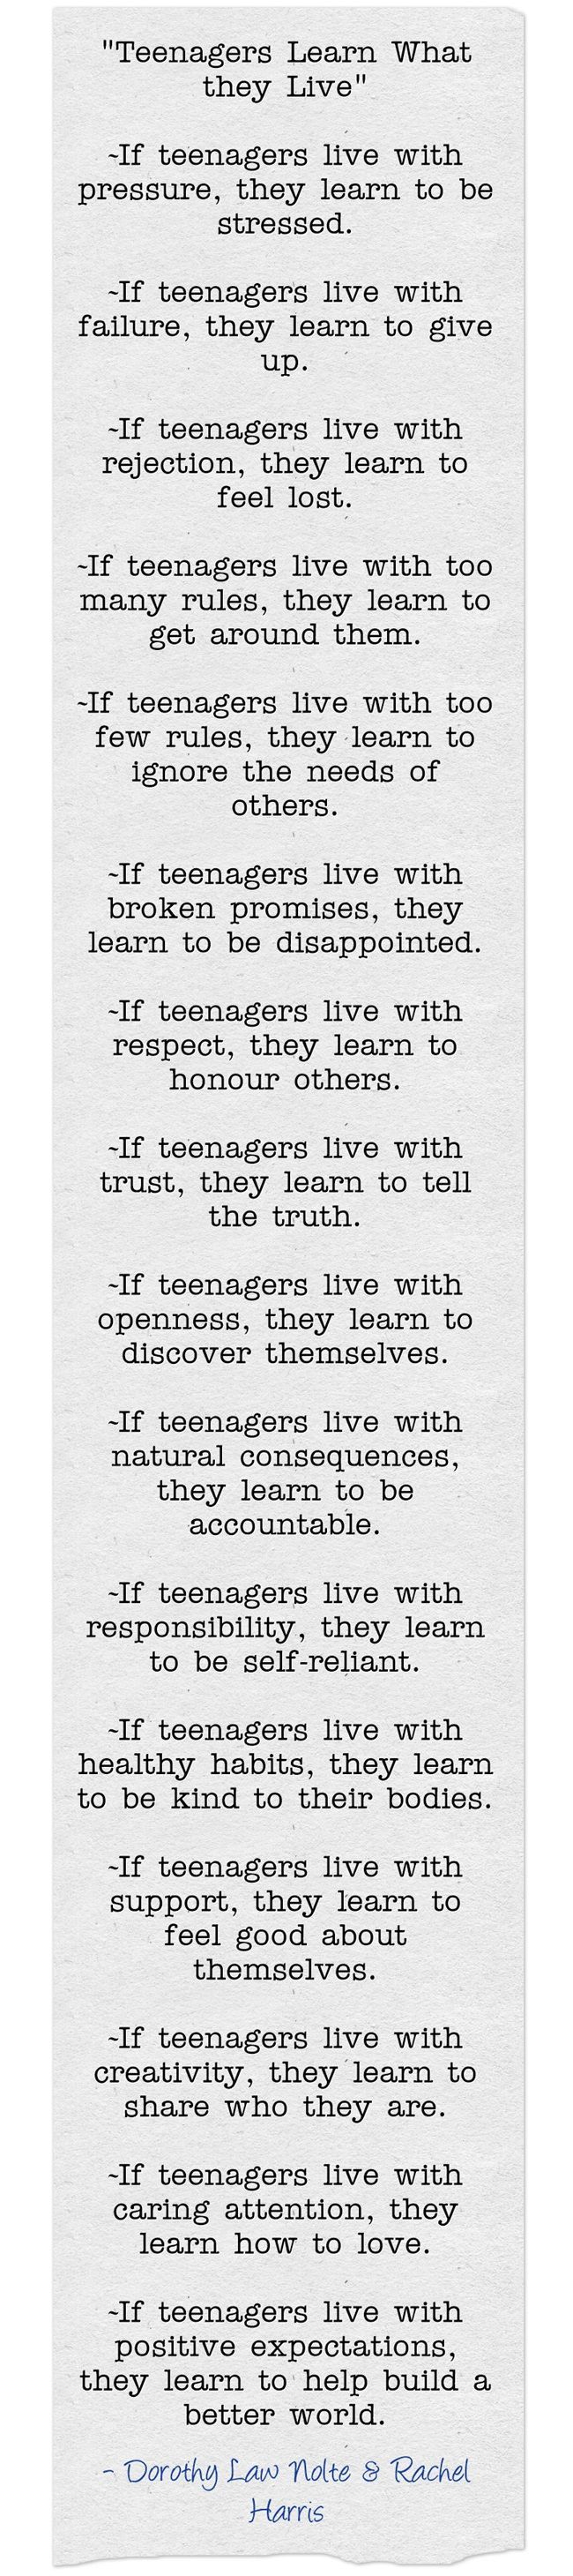 teenagers learn what they live poem by dorothy law nolte teenagers learn what they live poem by dorothy law nolte rachel harris